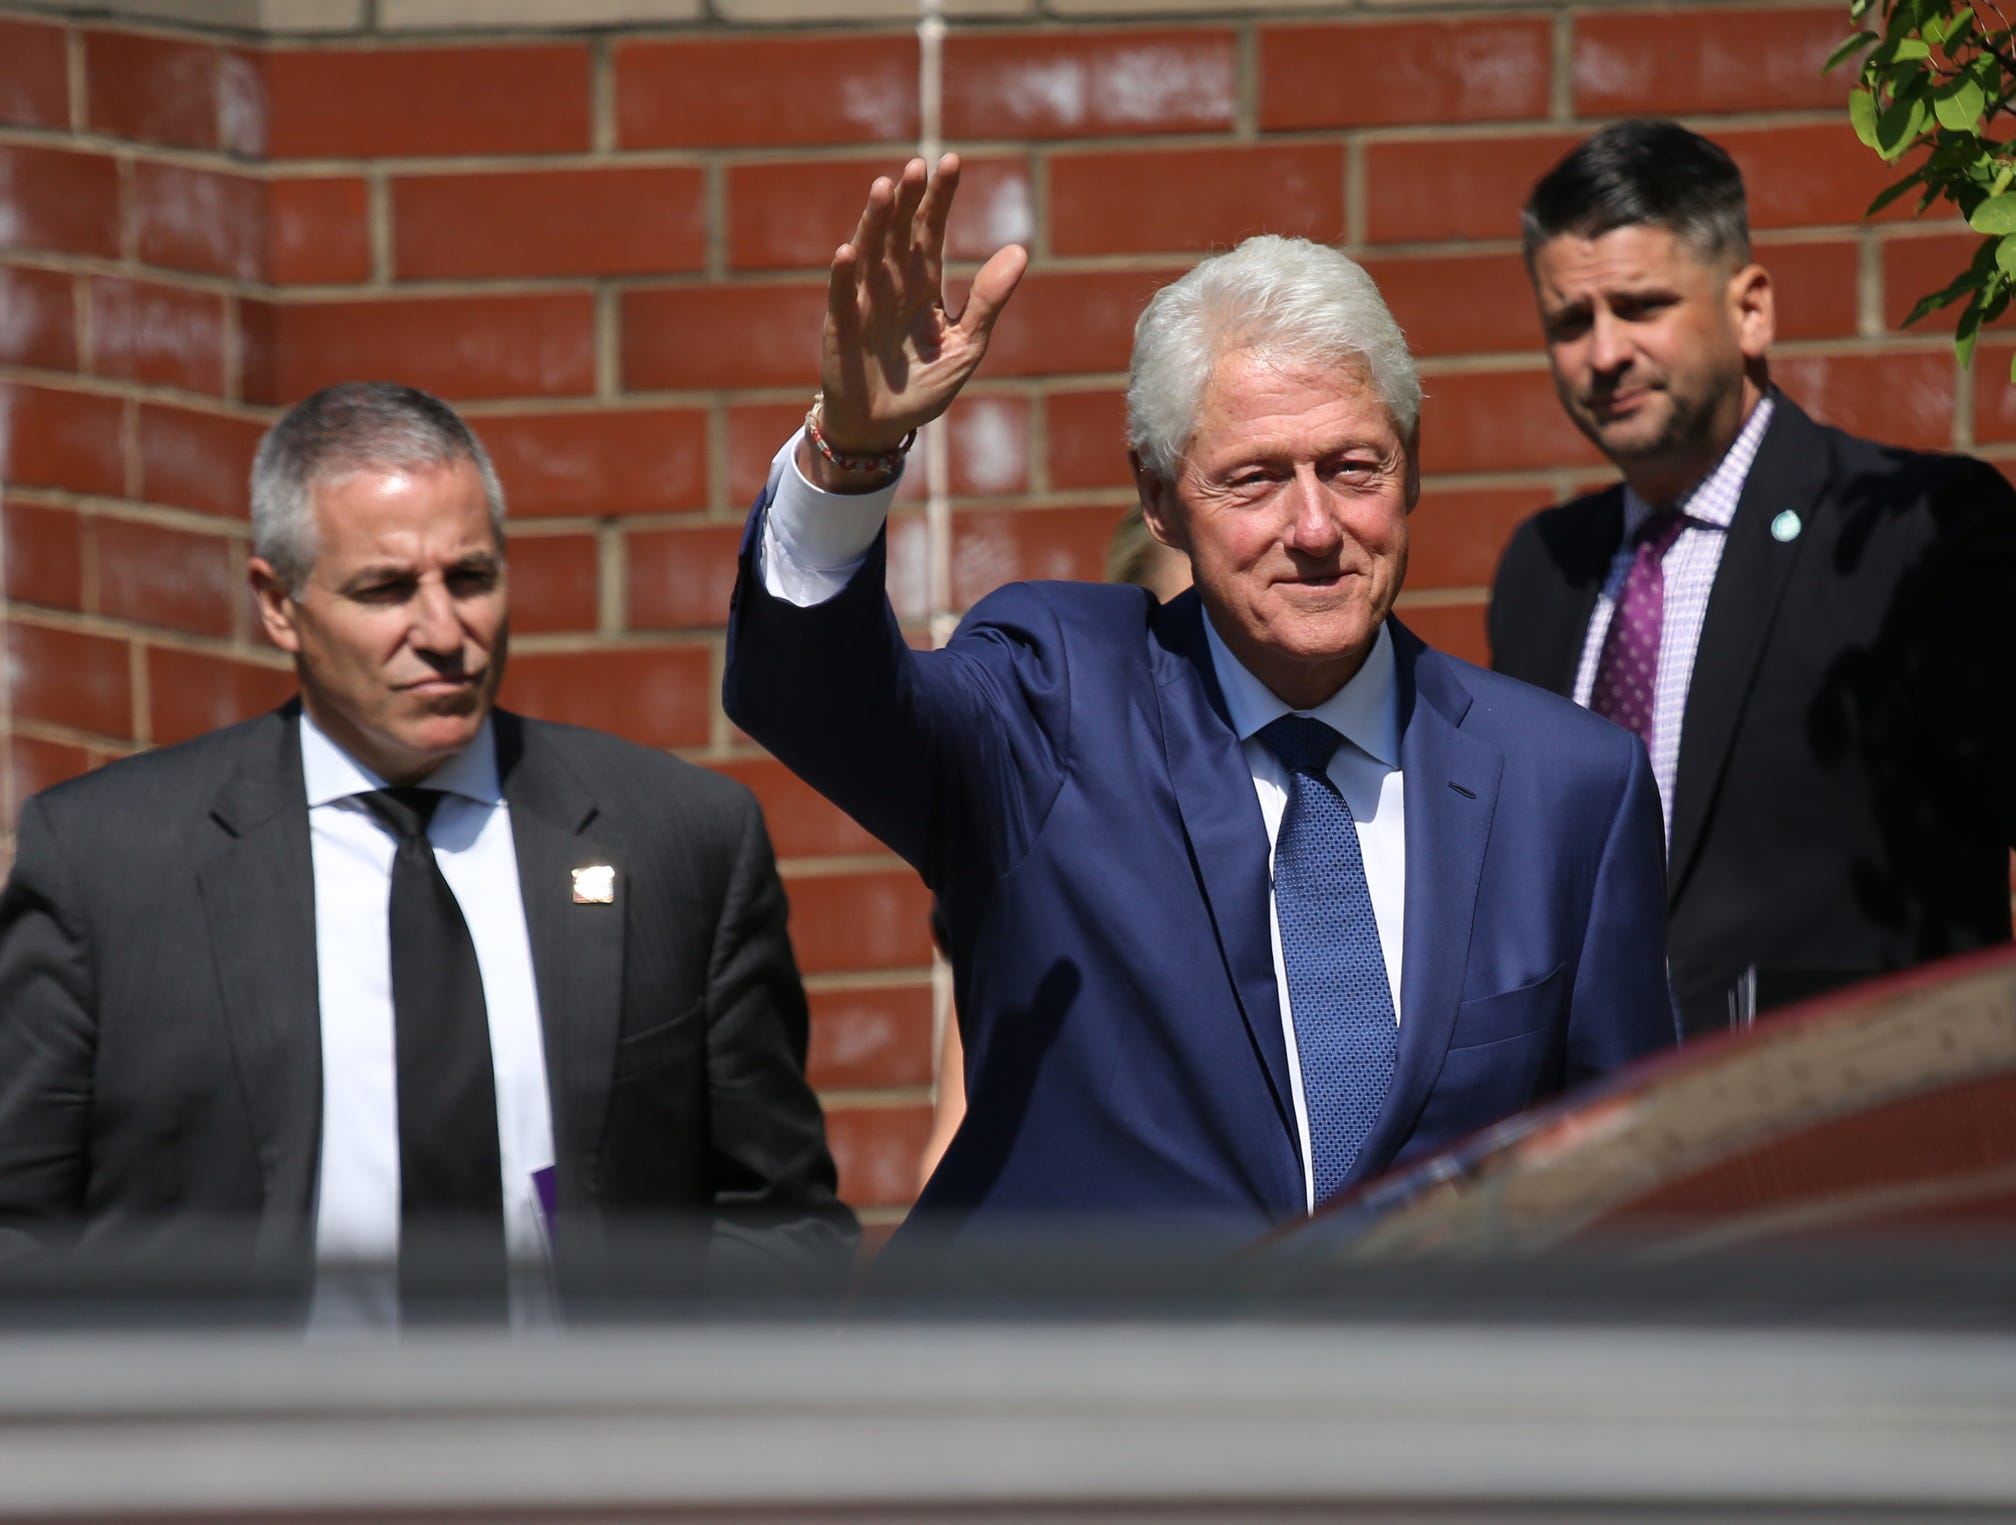 Former President Bill Clinton leaves Greater Grace Temple in Detroit after paying his final respects to Aretha Franklin, Friday, August 31, 2018.